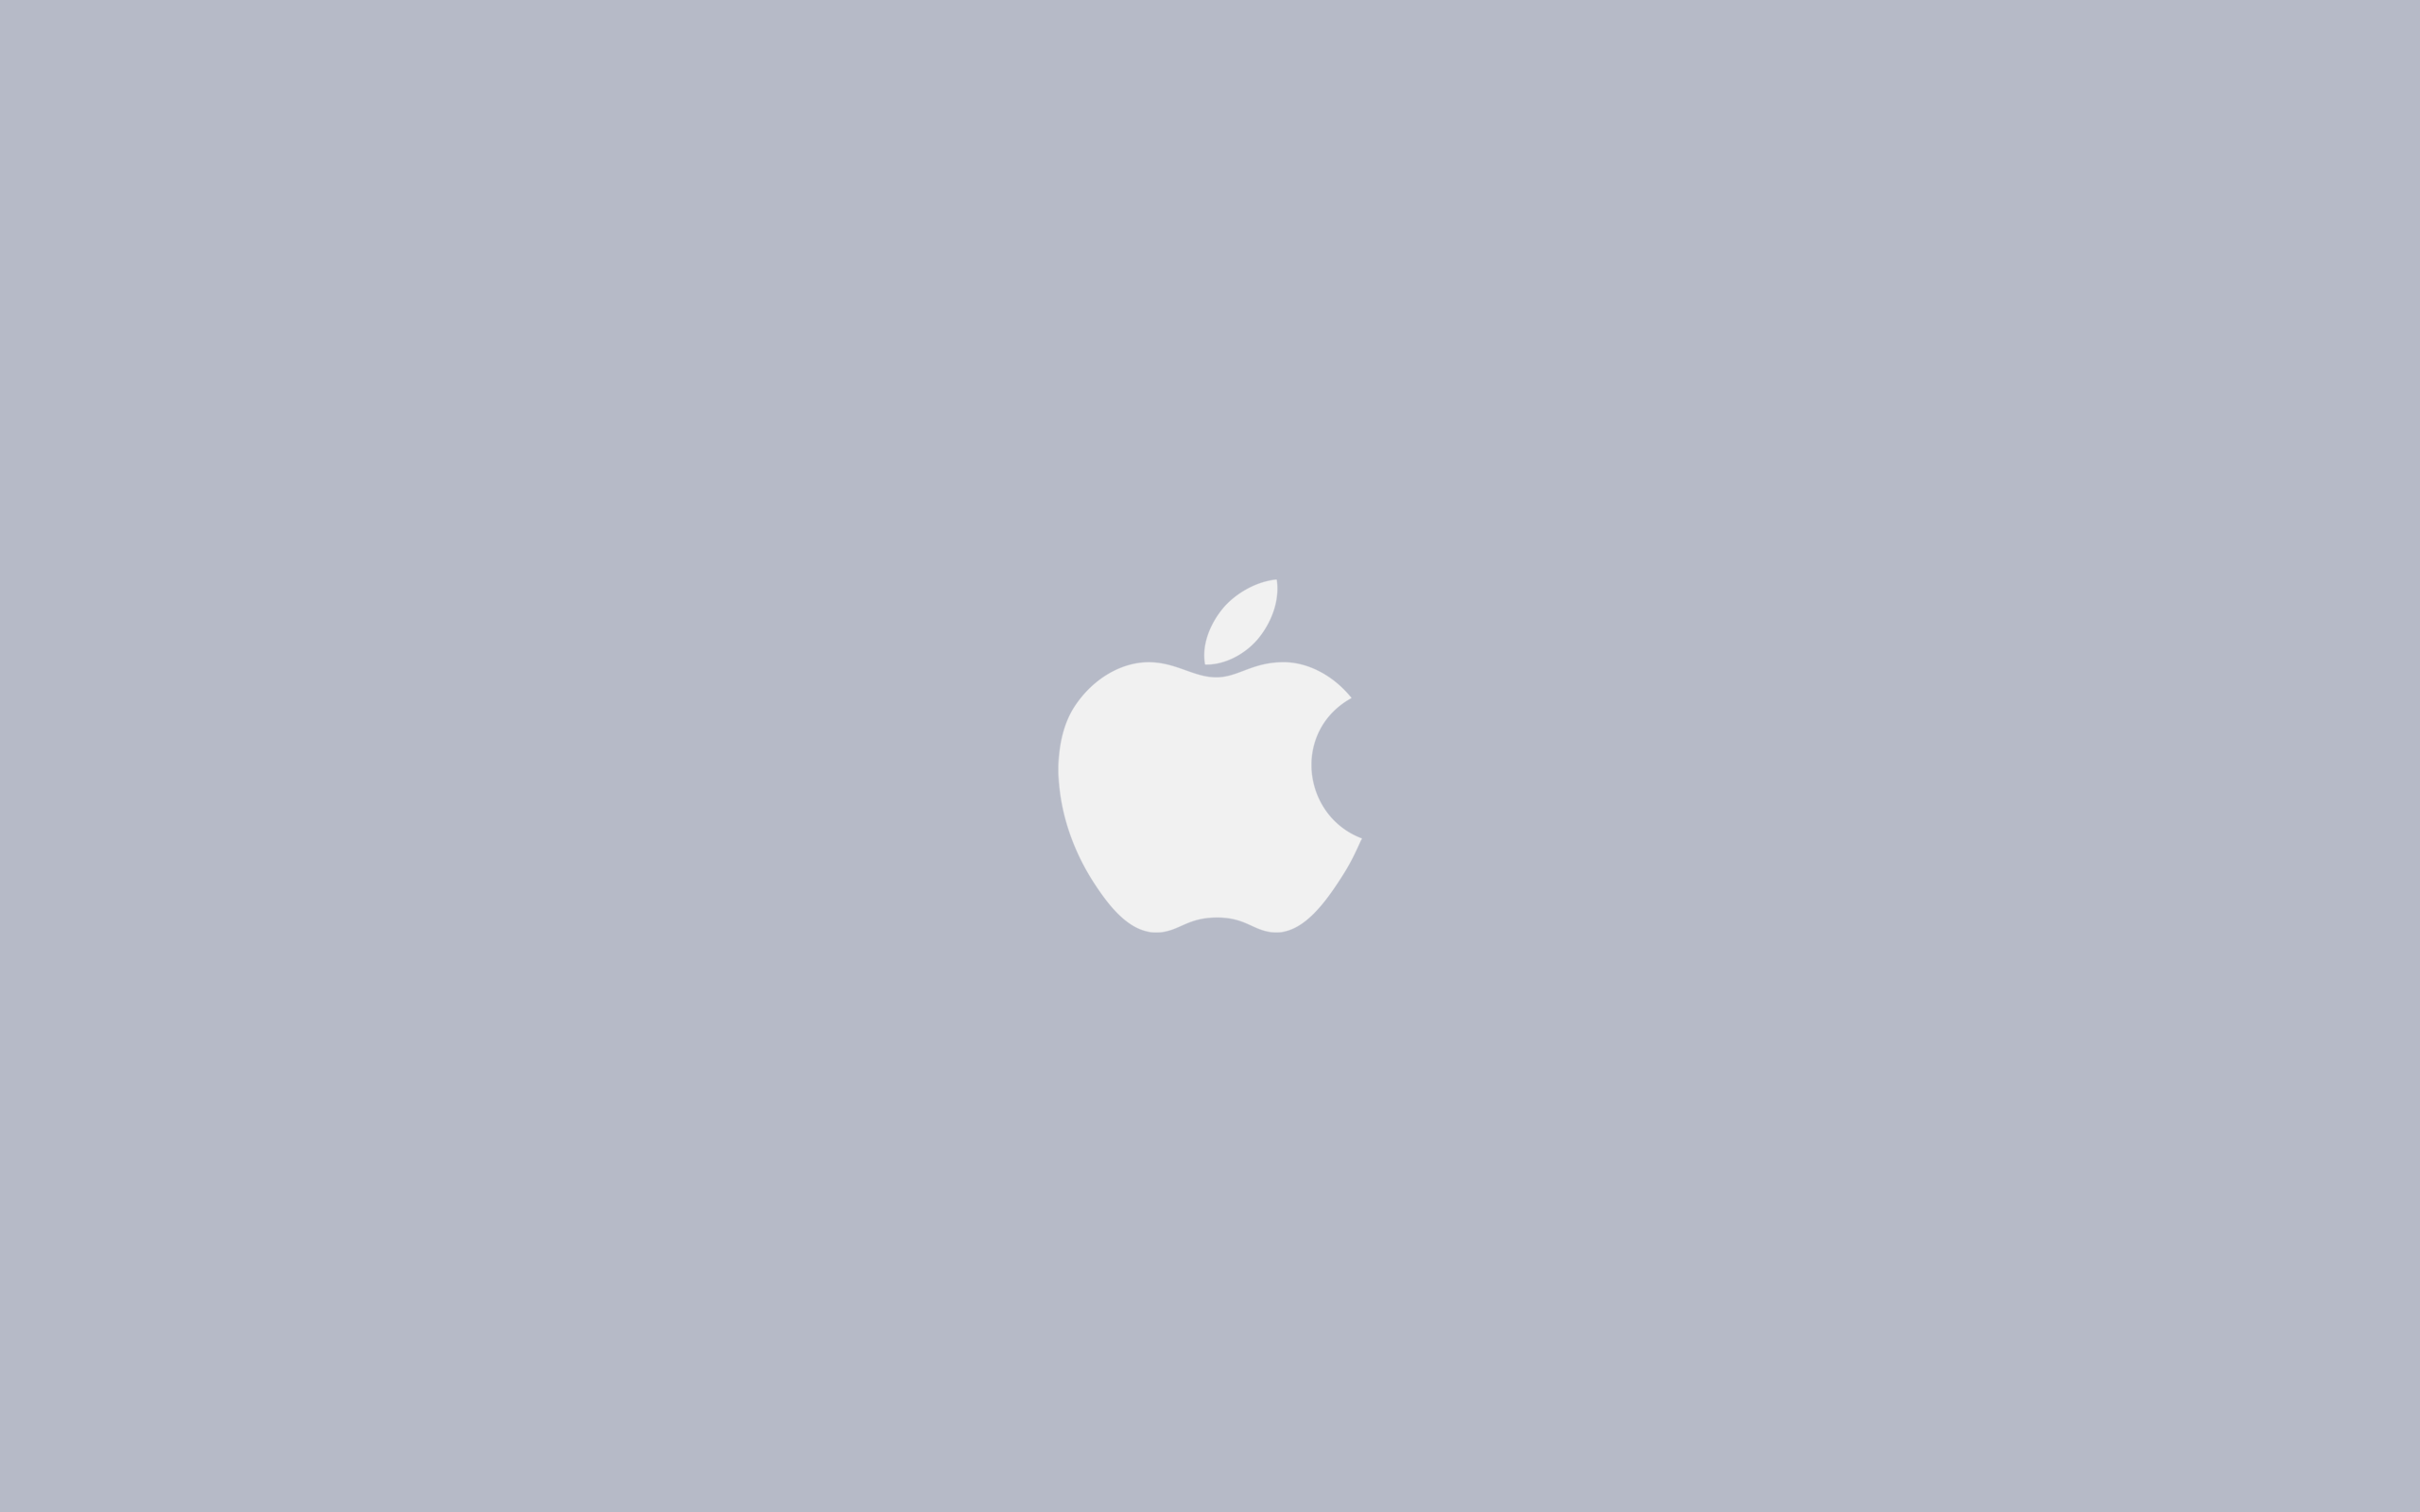 Apple logo wallpapers full hd wallpaper search page 10 - Apple Logo Wallpapers Full Hd Wallpaper Search Page 10